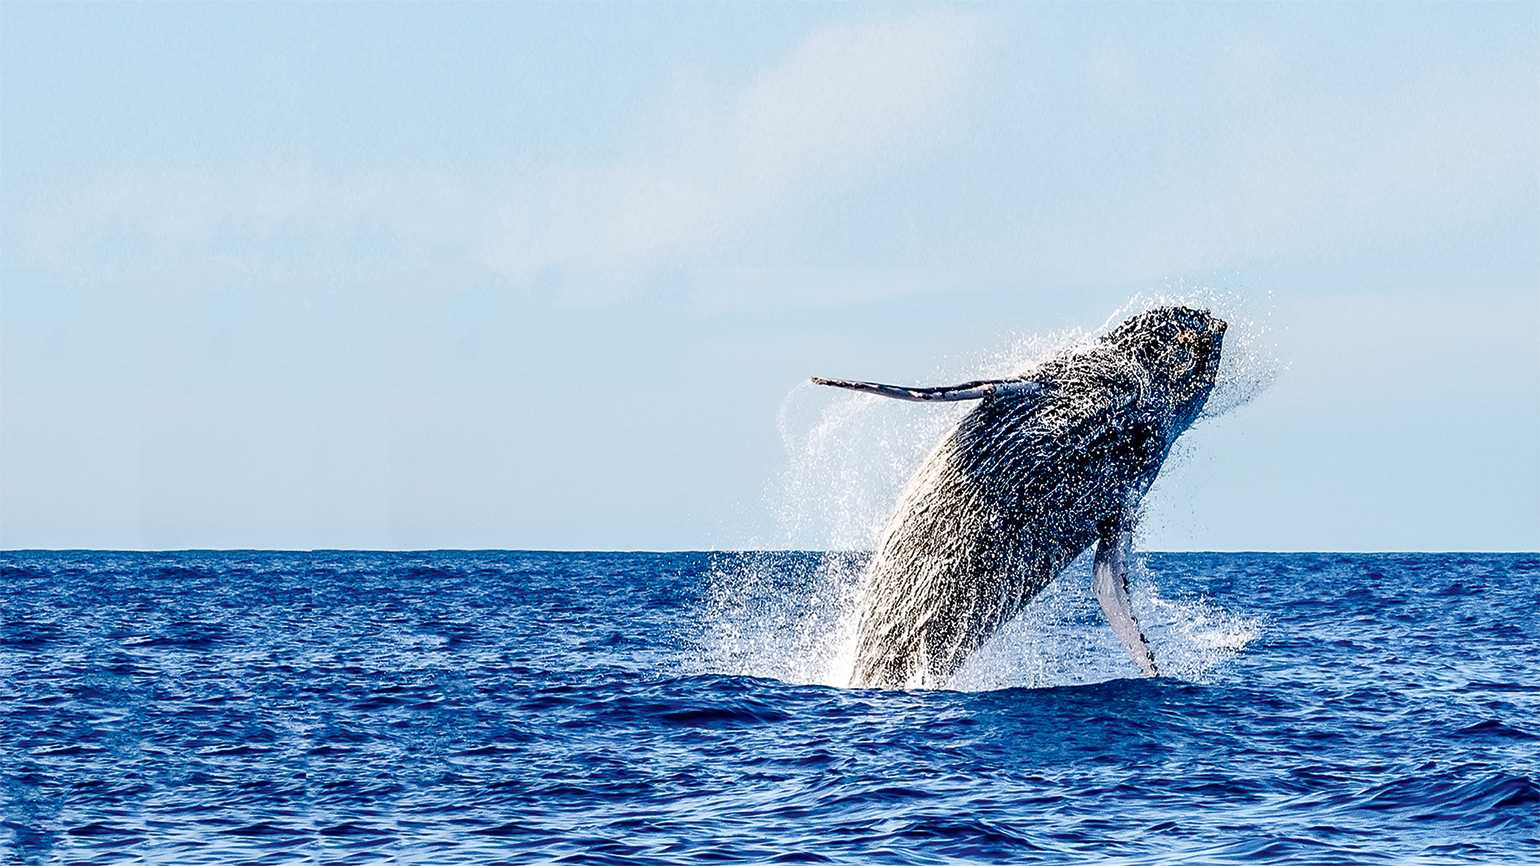 California Grey Whale breaching; photo by Larry Pannell/Getty Images